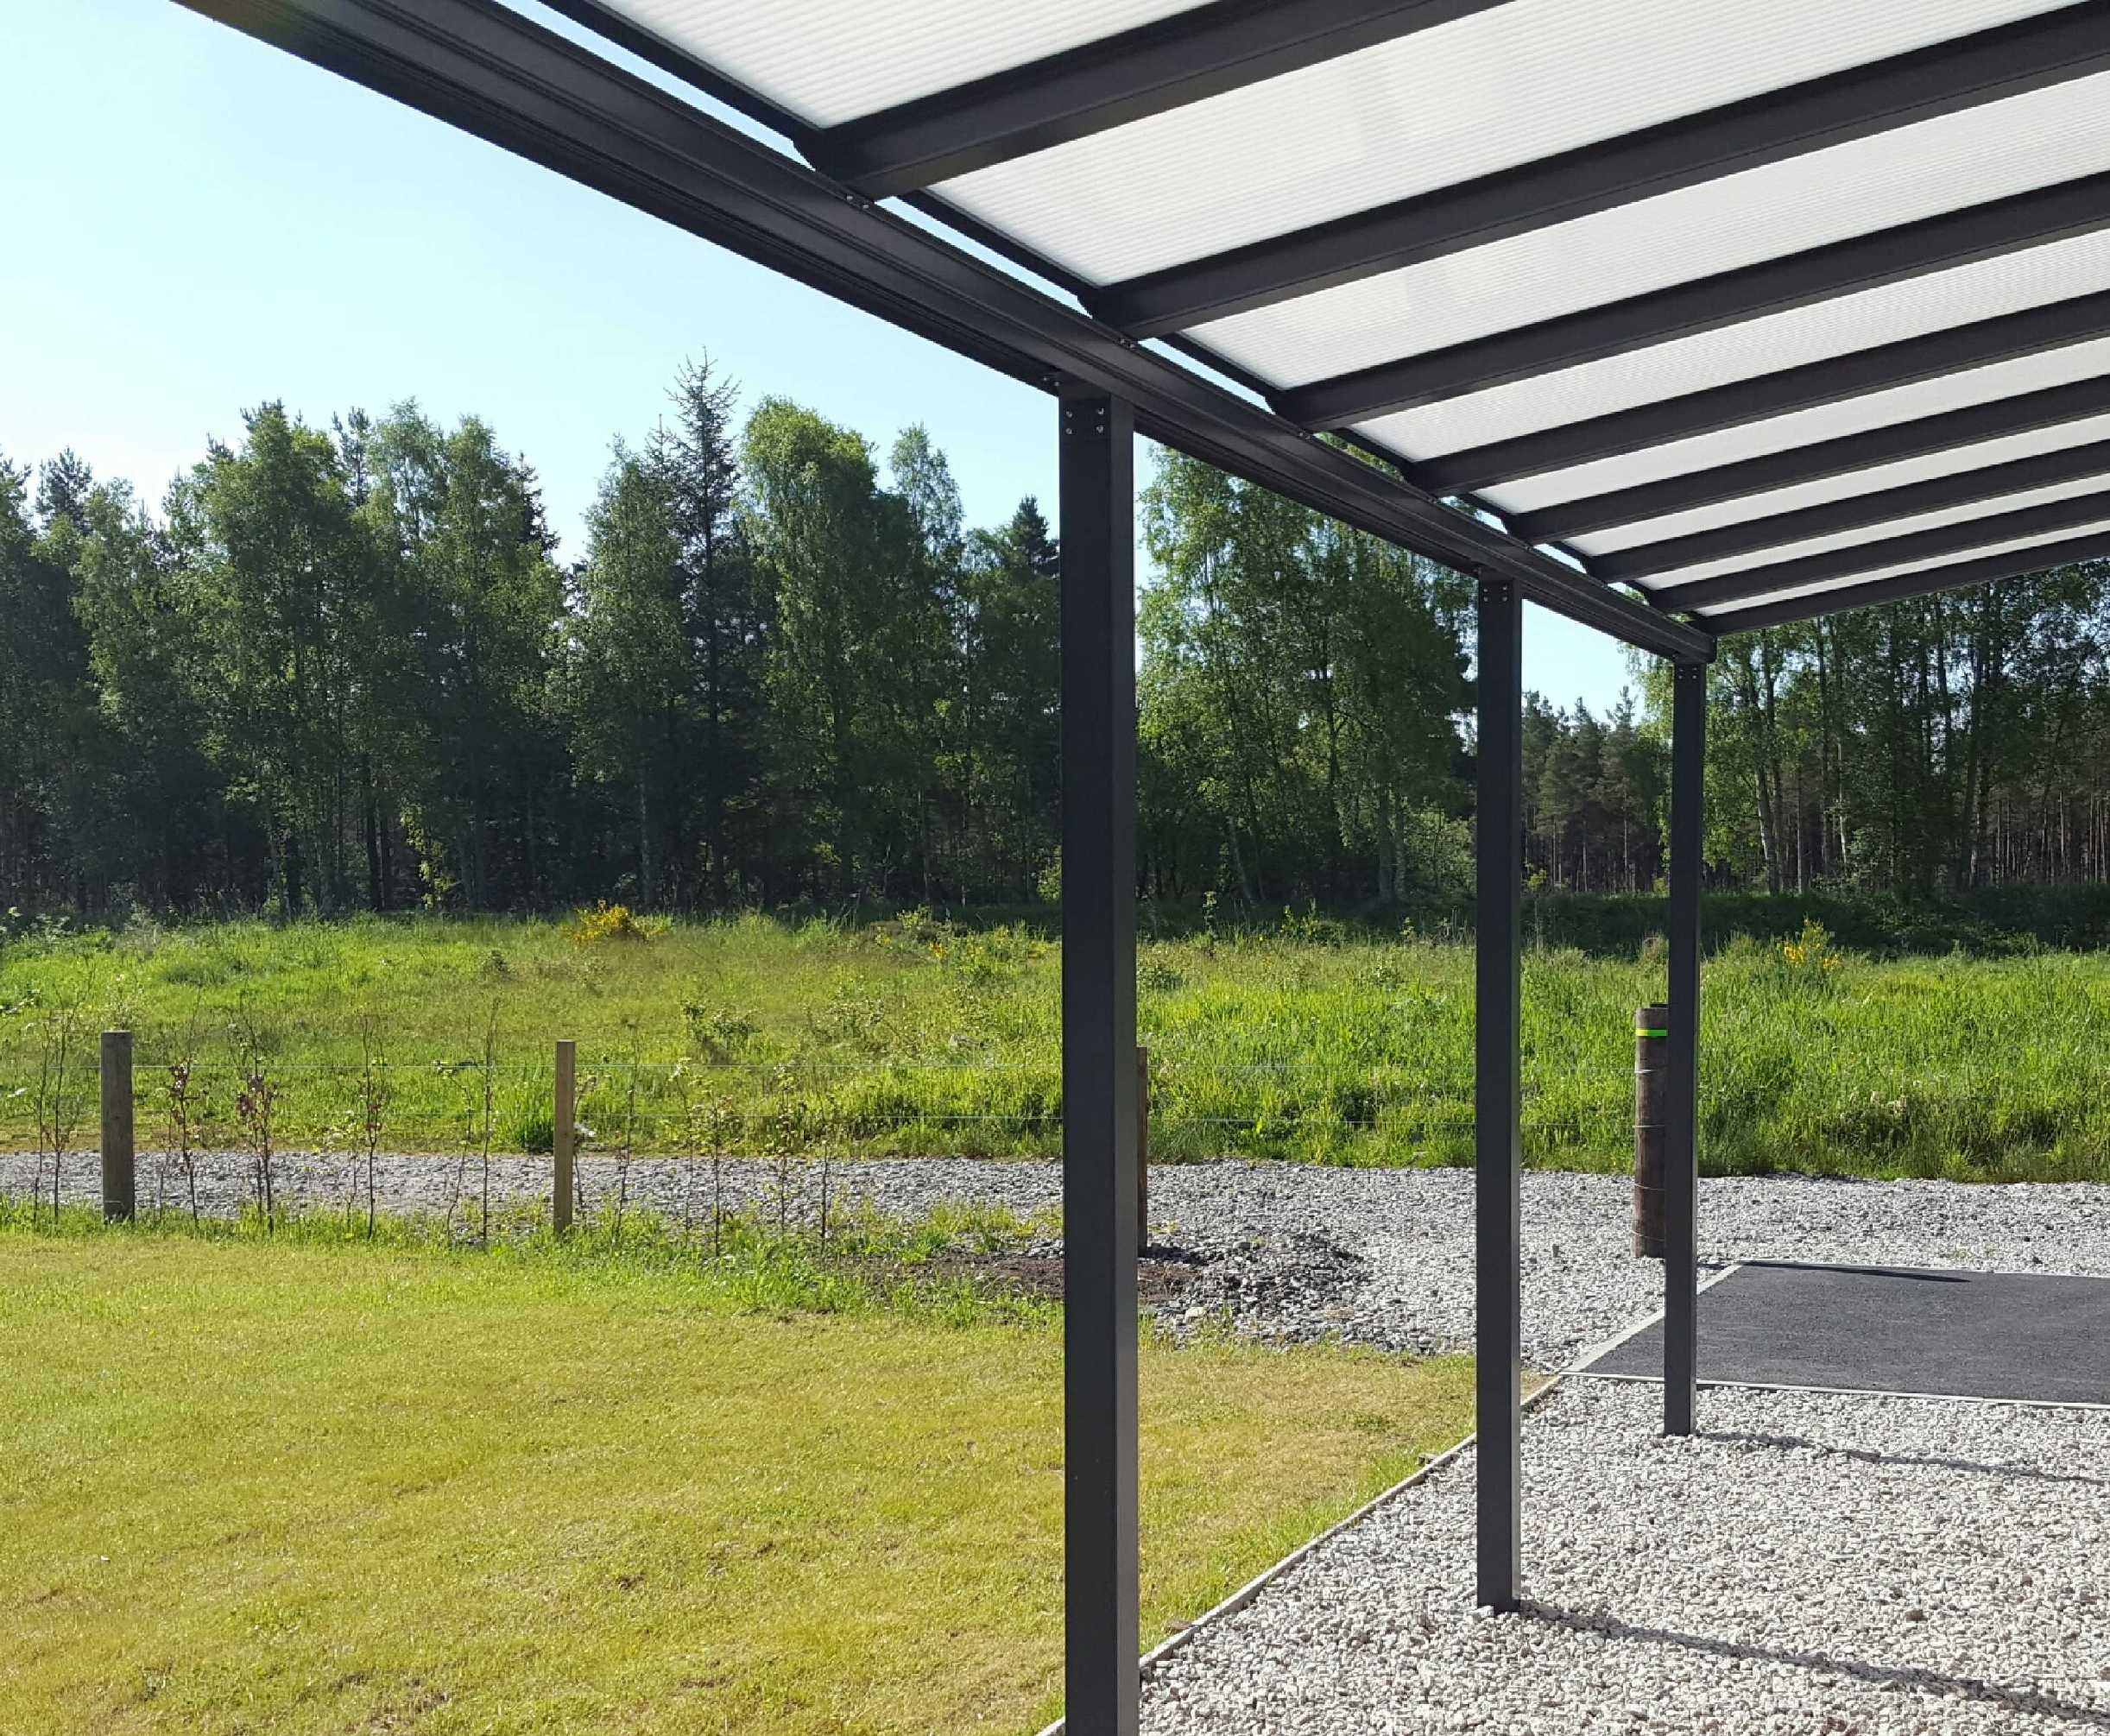 Omega Smart Lean-To Canopy, Anthracite Grey, UNGLAZED for 6mm Glazing - 7.7m (W) x 2.5m (P), (4) Supporting Posts